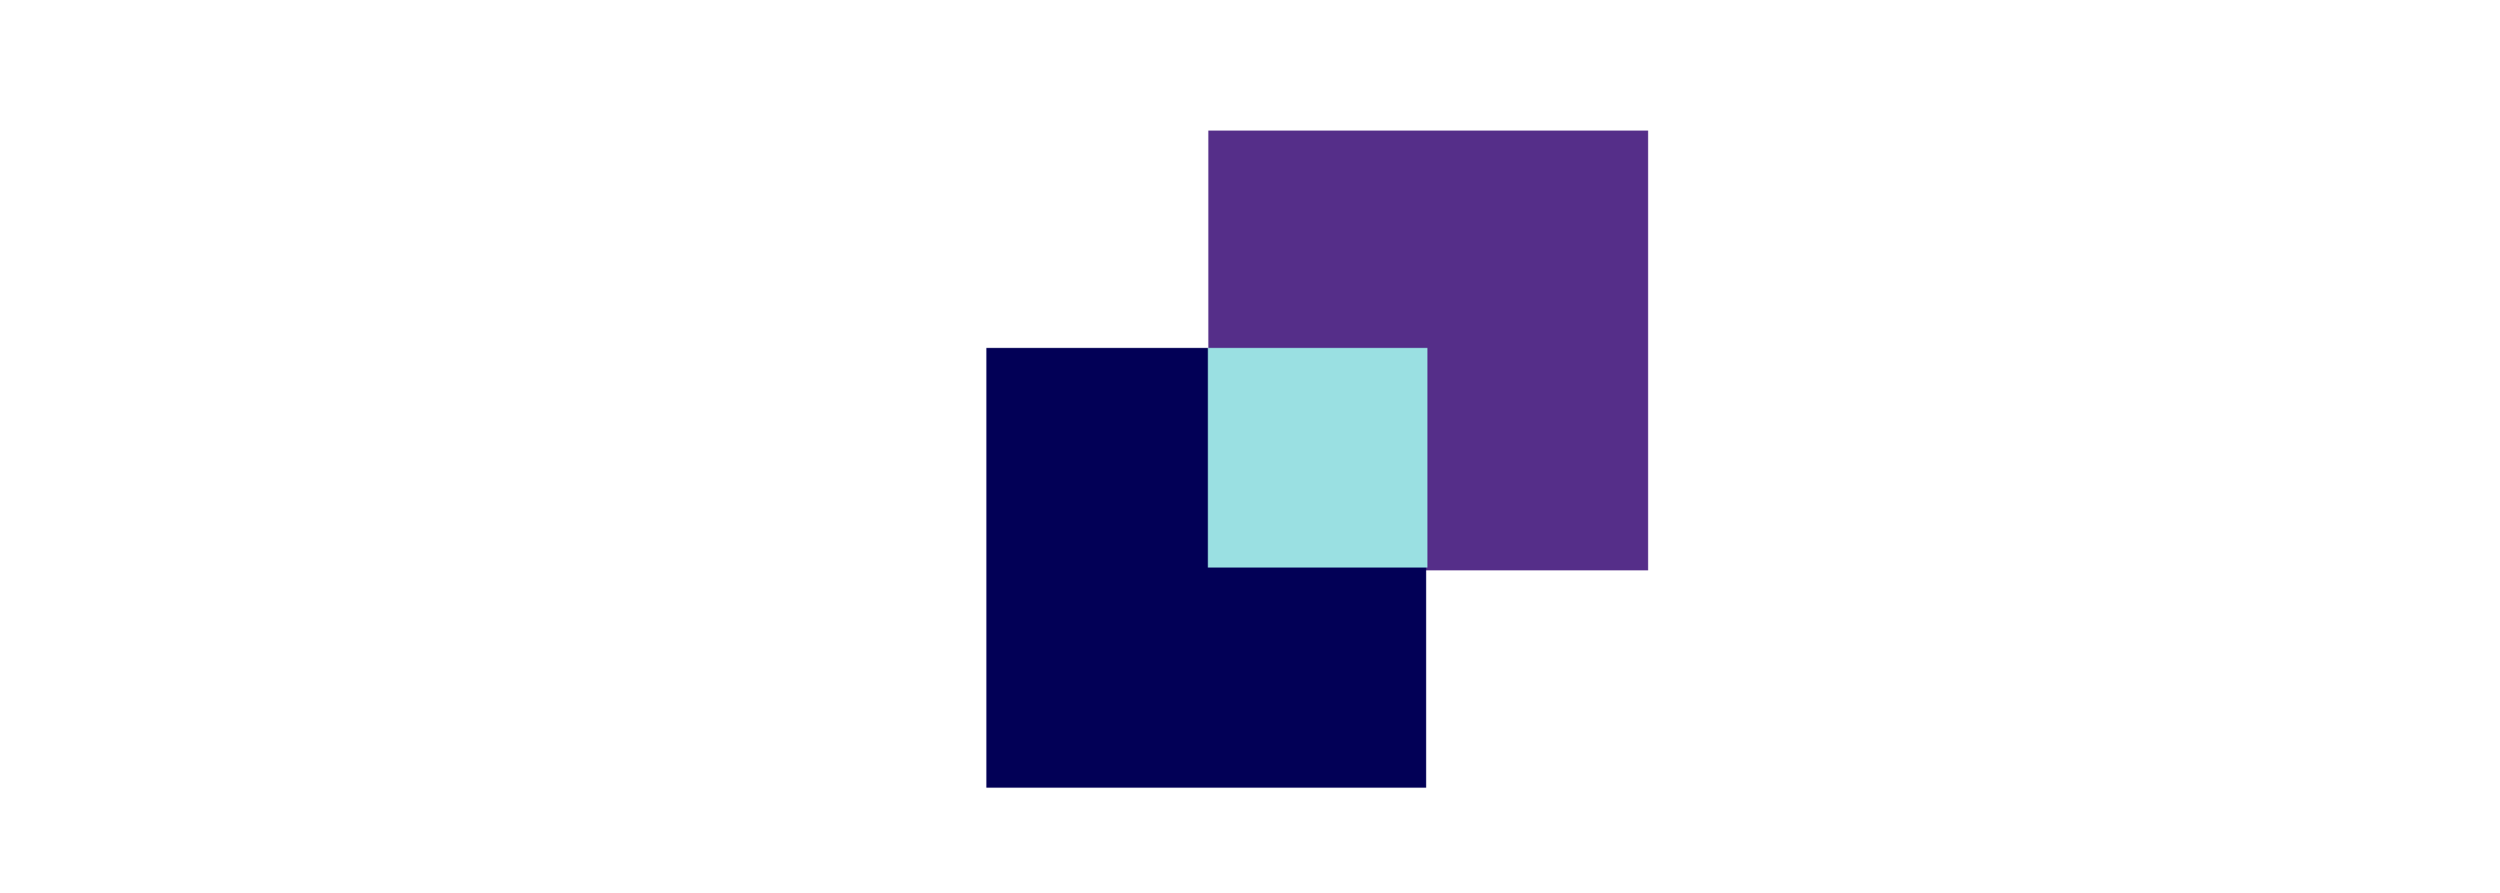 stakeholder-icon.png